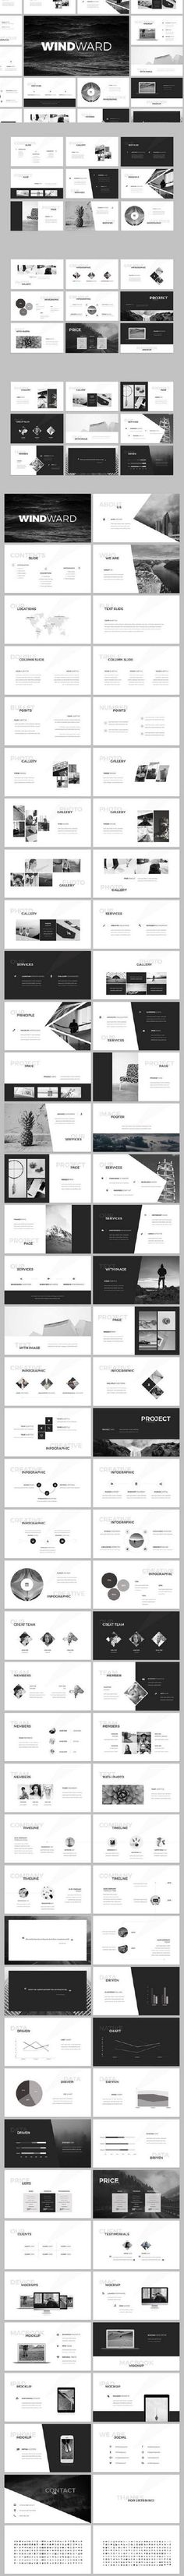 WindWard PowerPoint Template 859006